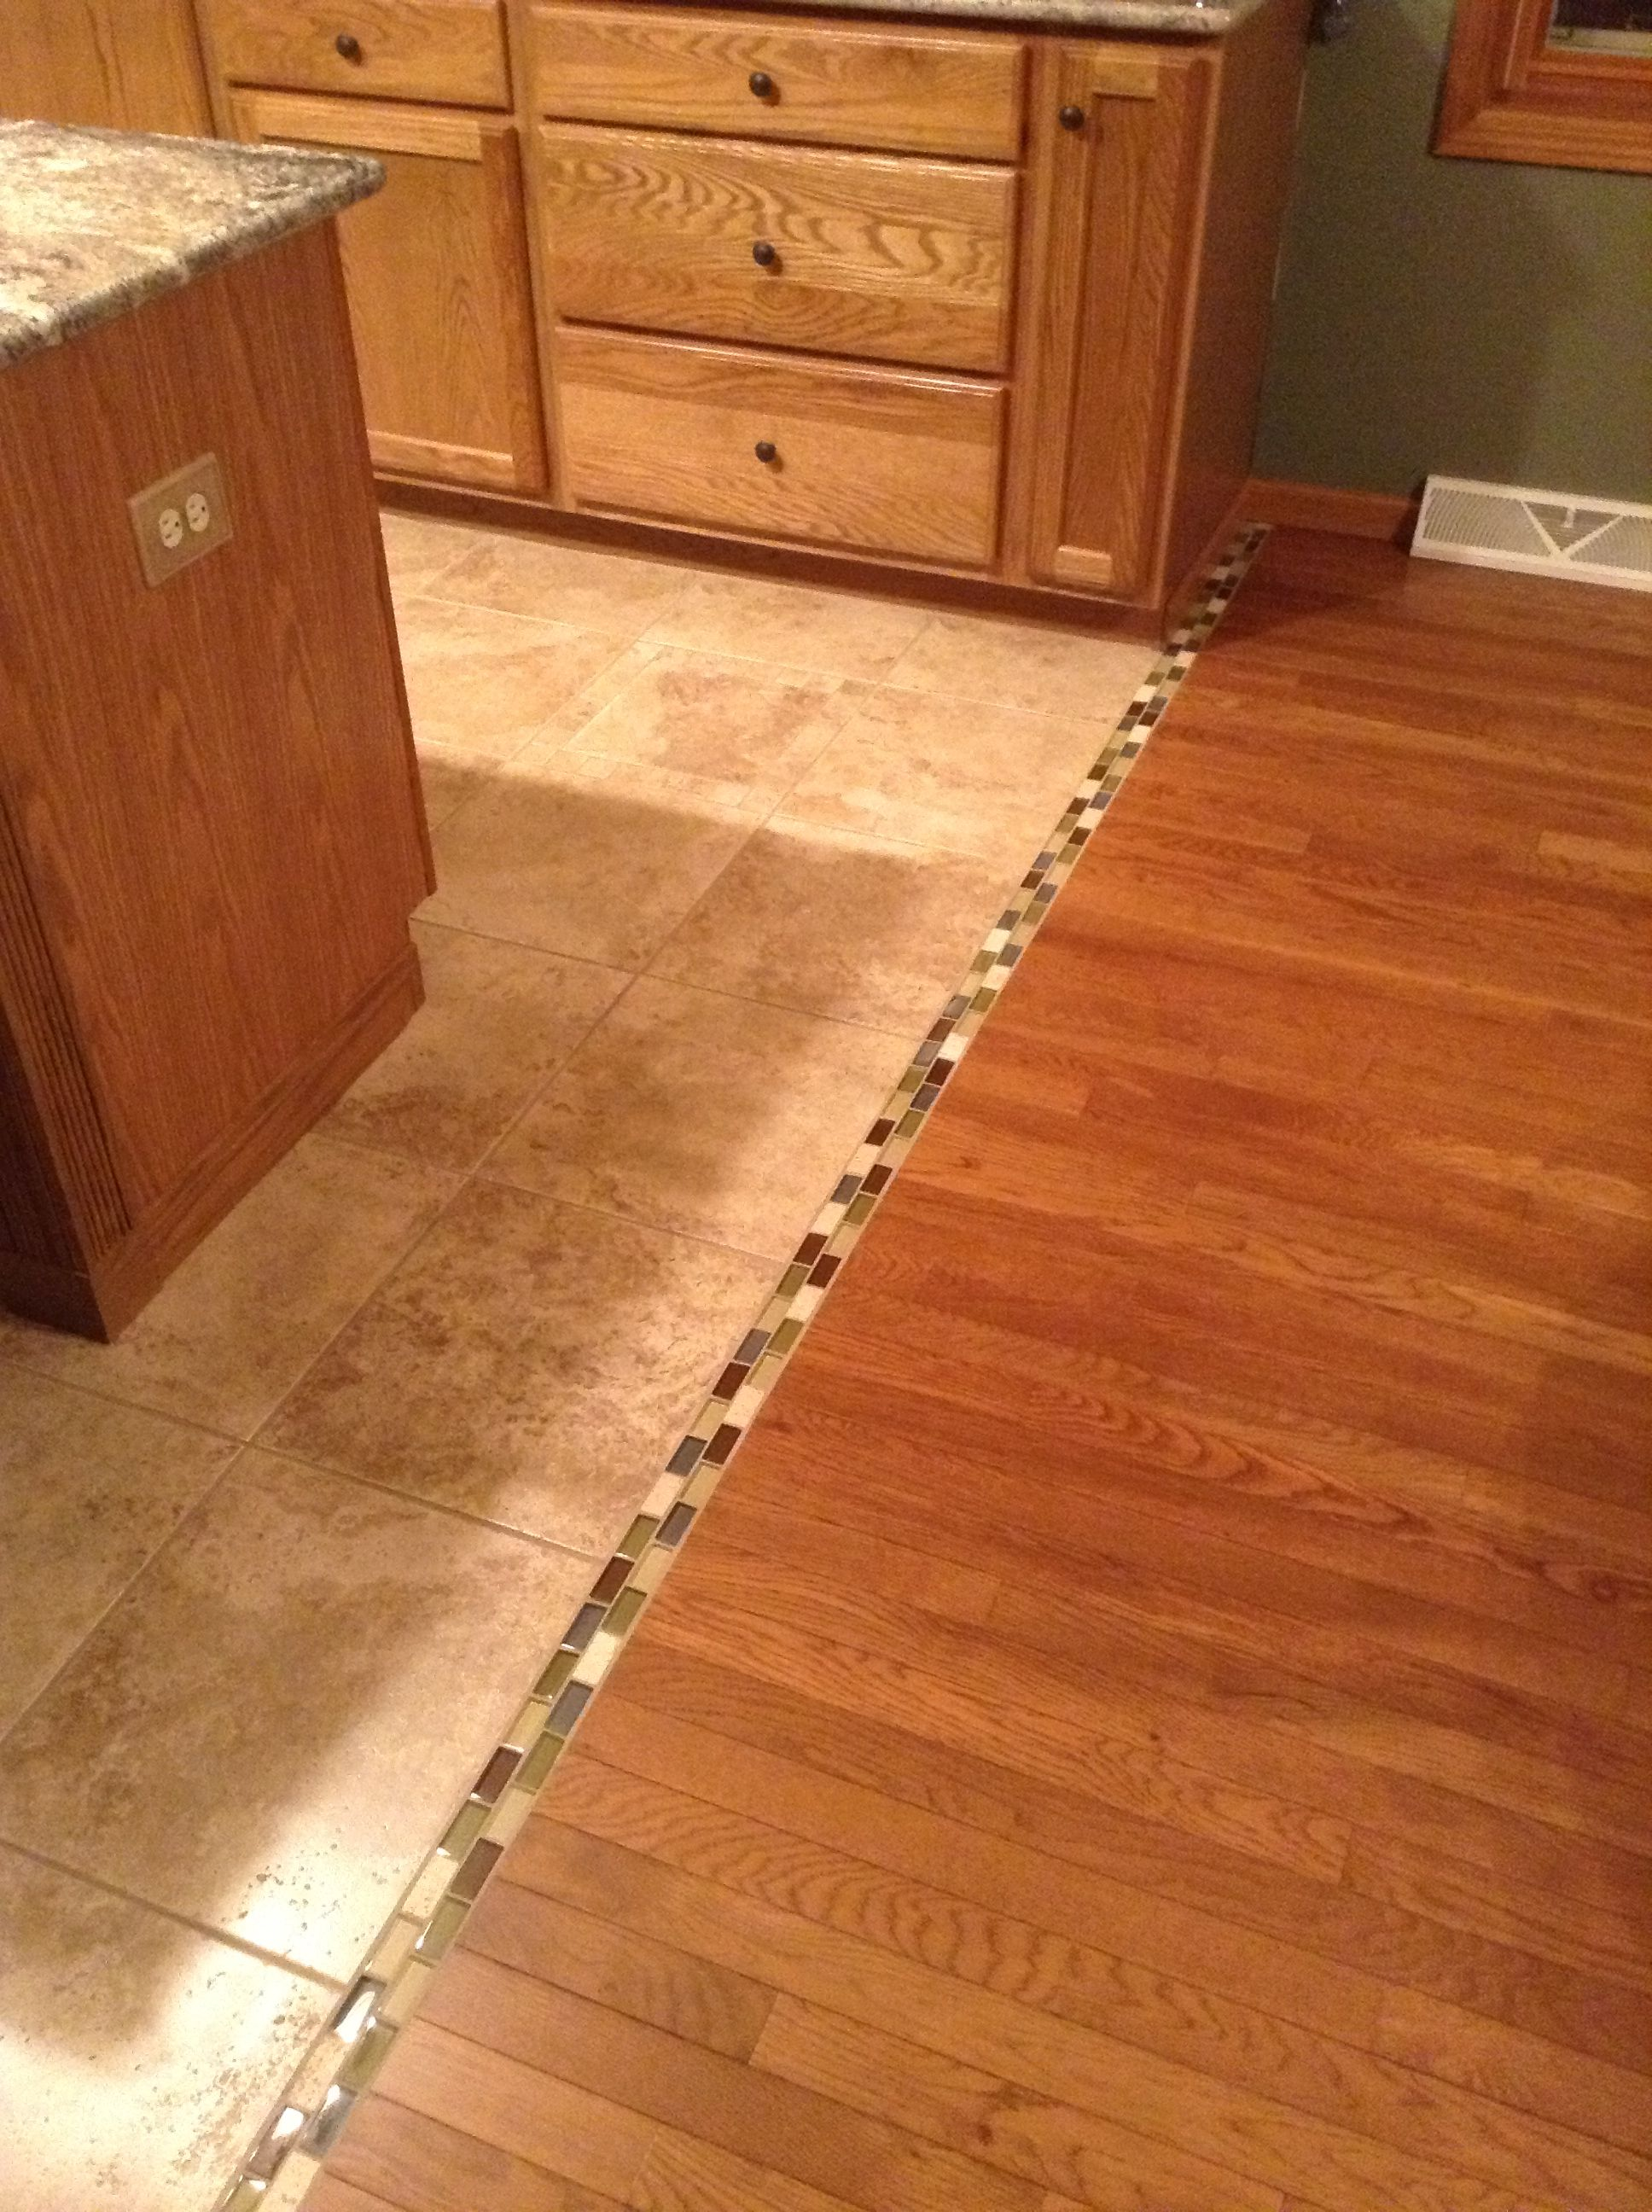 Transition Between Hardwood And Tile Floor We Should Do This - What do you need for tile floor